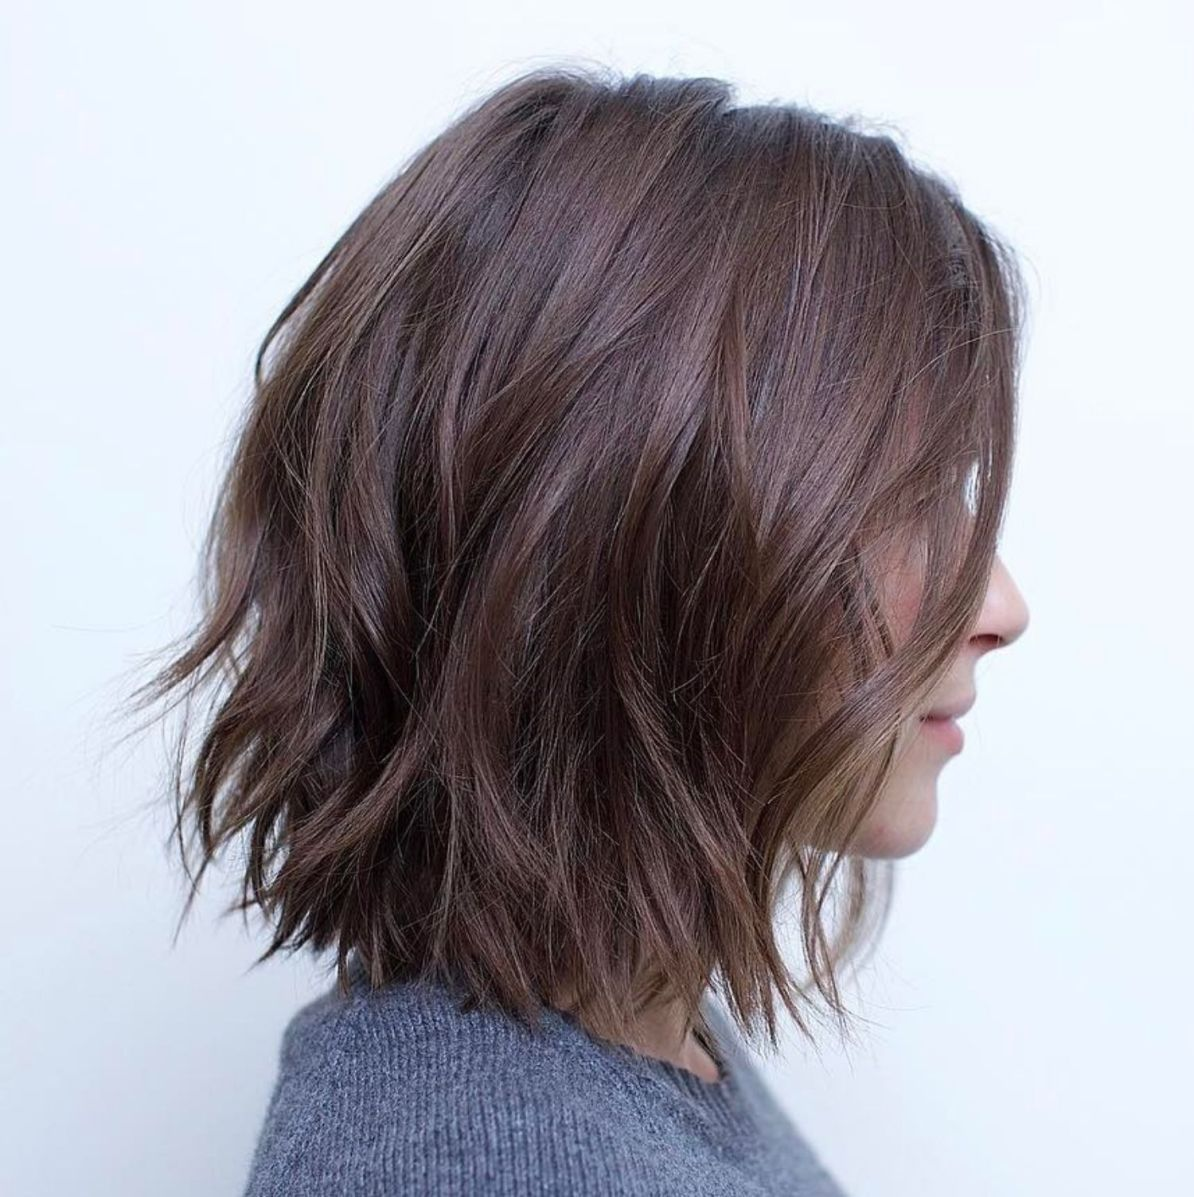 46++ How to style a choppy bob trends